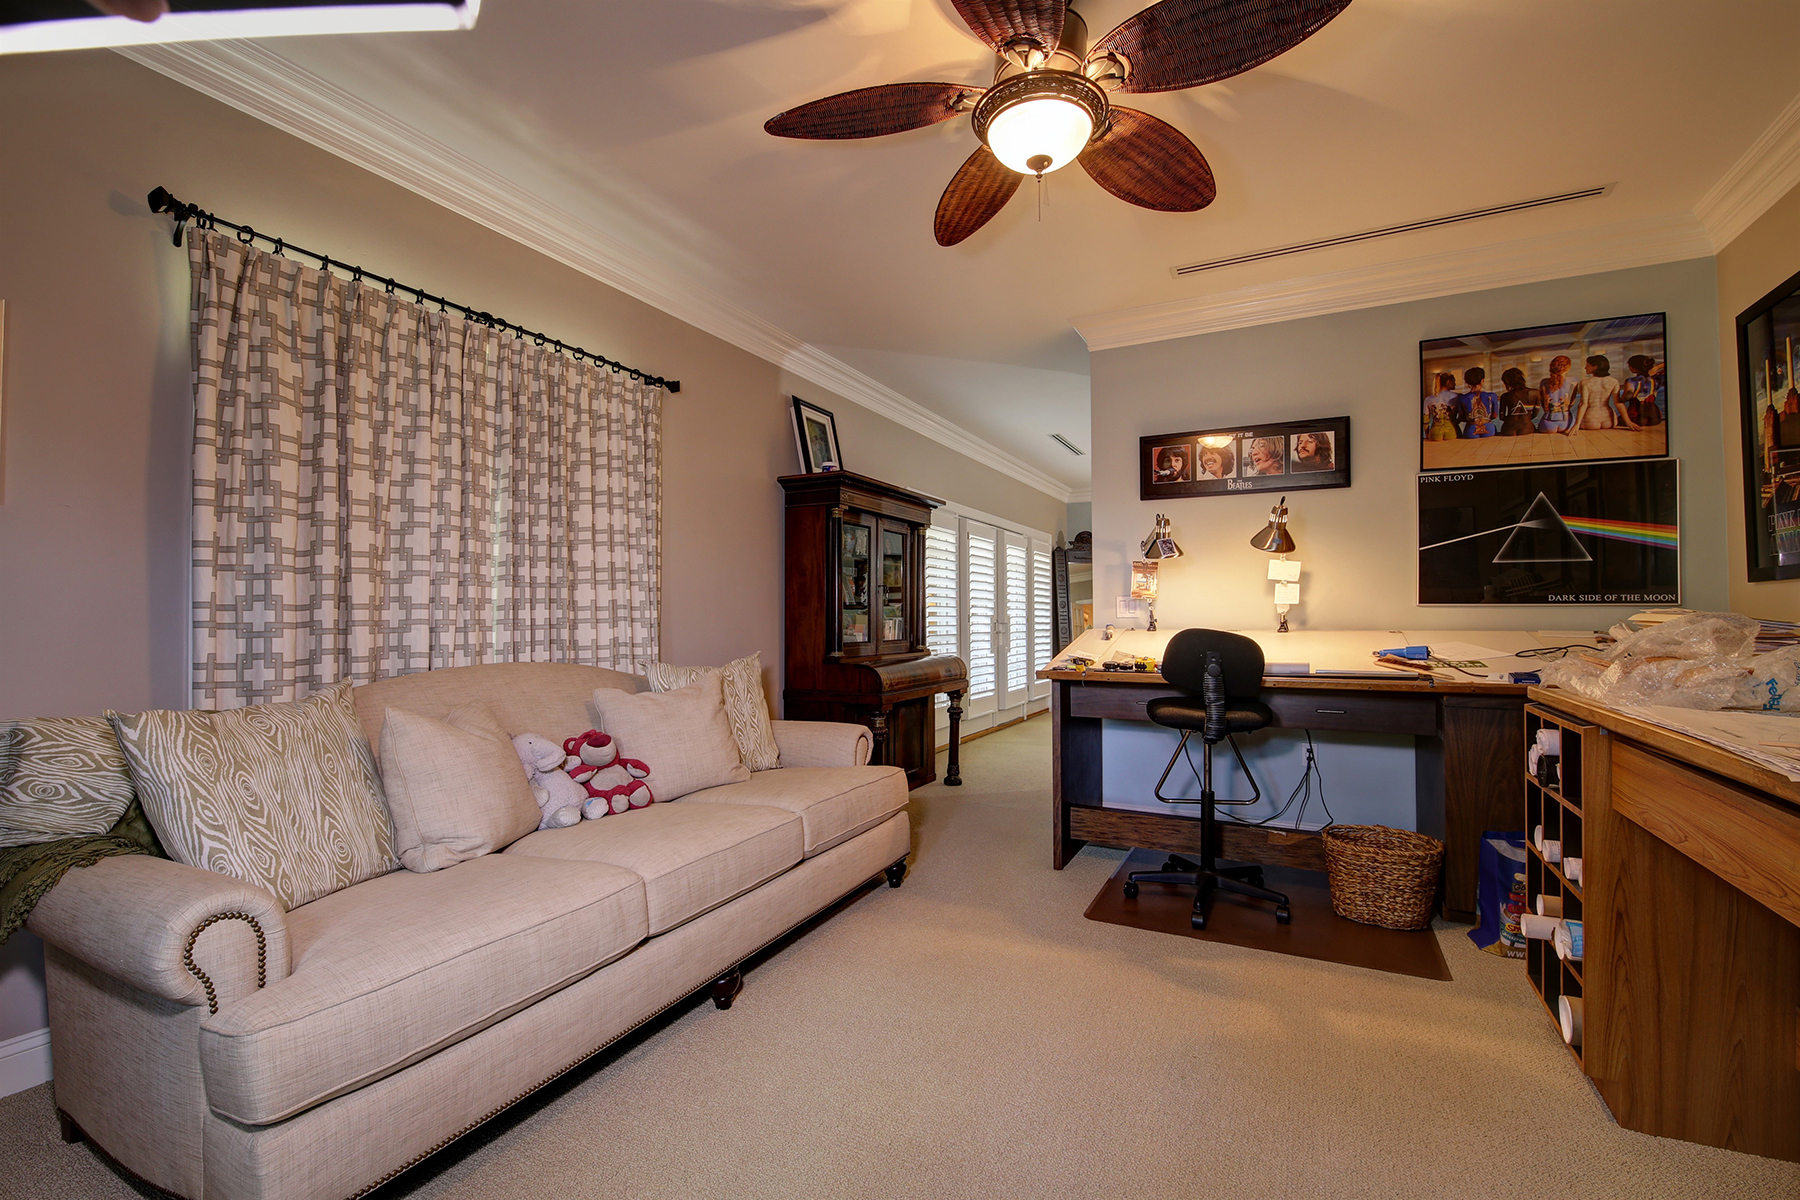 Additional photo for property listing at 320 Magnolia Dr , Clearwater, FL 33756 320  Magnolia Dr,  Clearwater, Florida 33756 United States